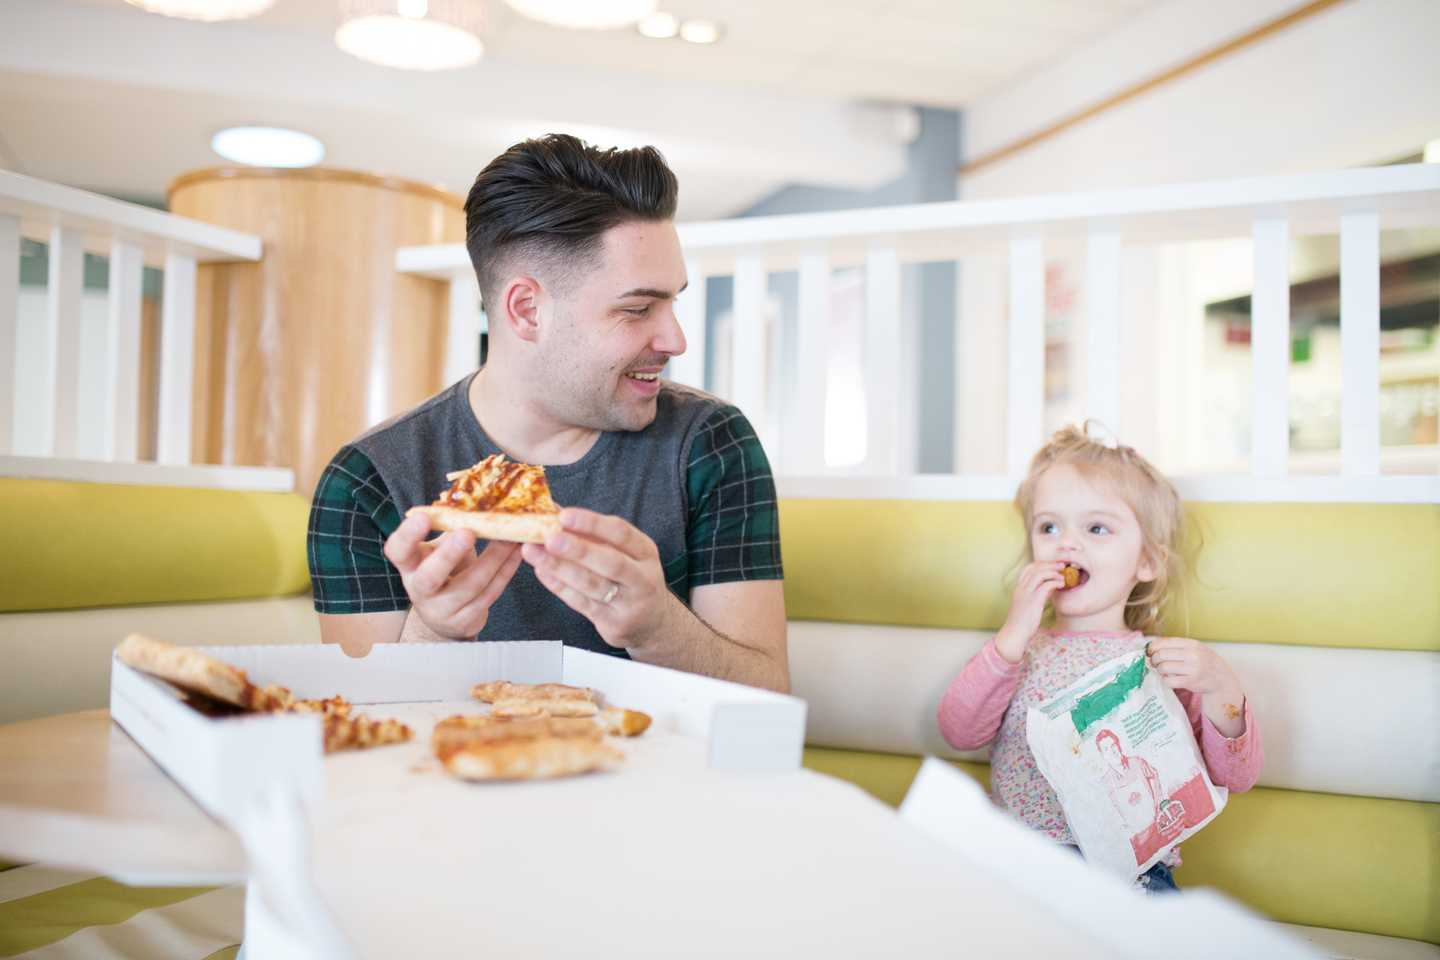 Guests enjoying pizza at Papa Johns